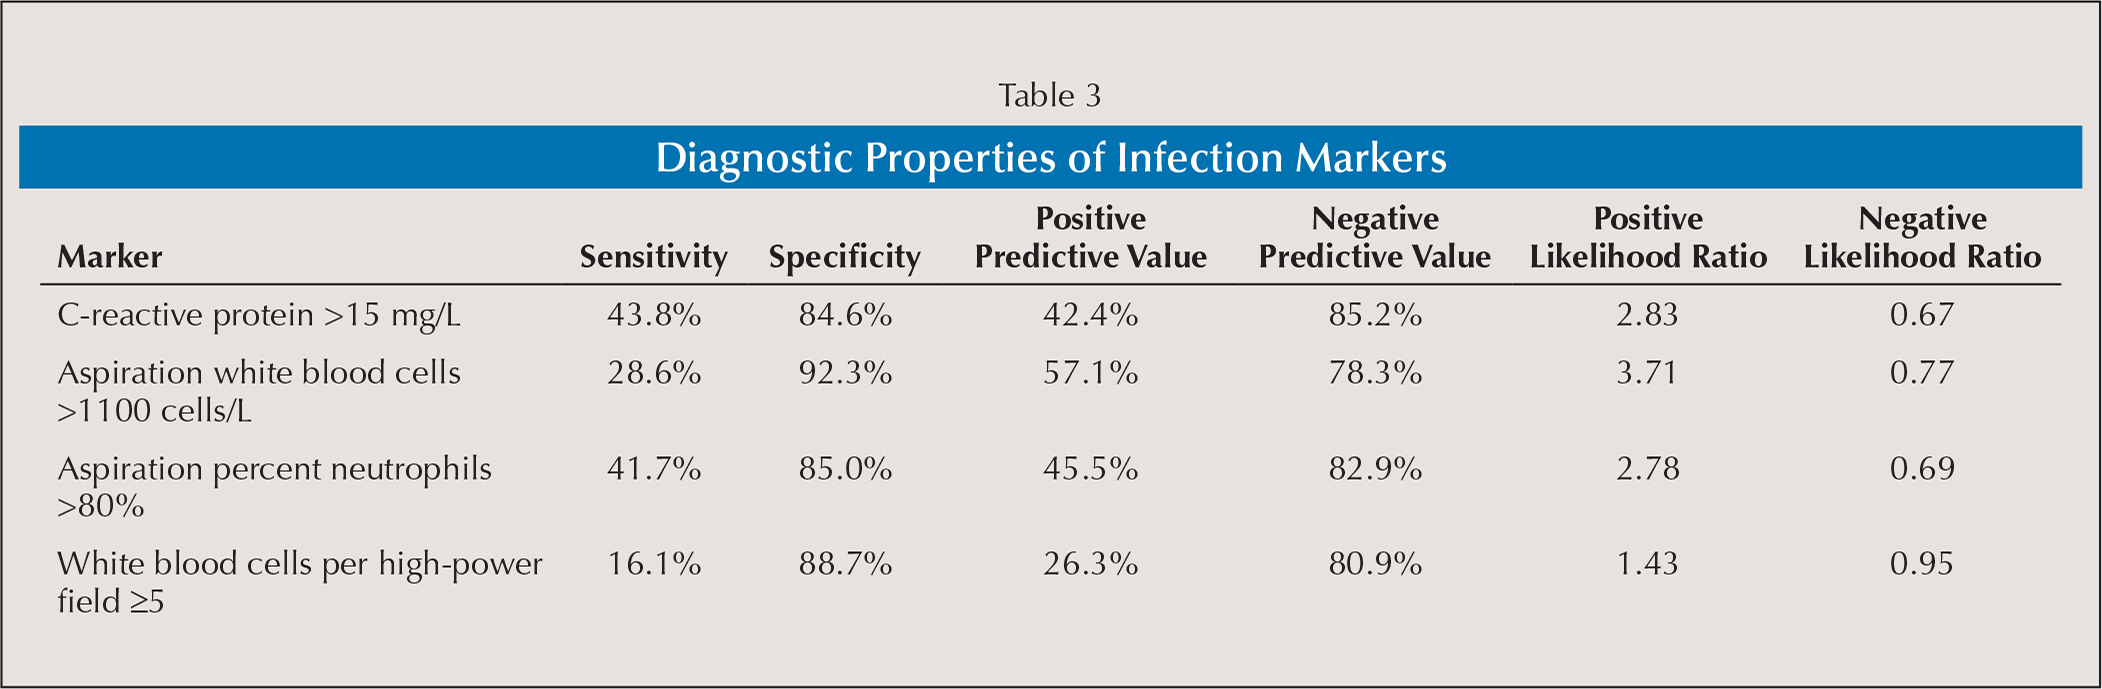 Diagnostic Properties of Infection Markers